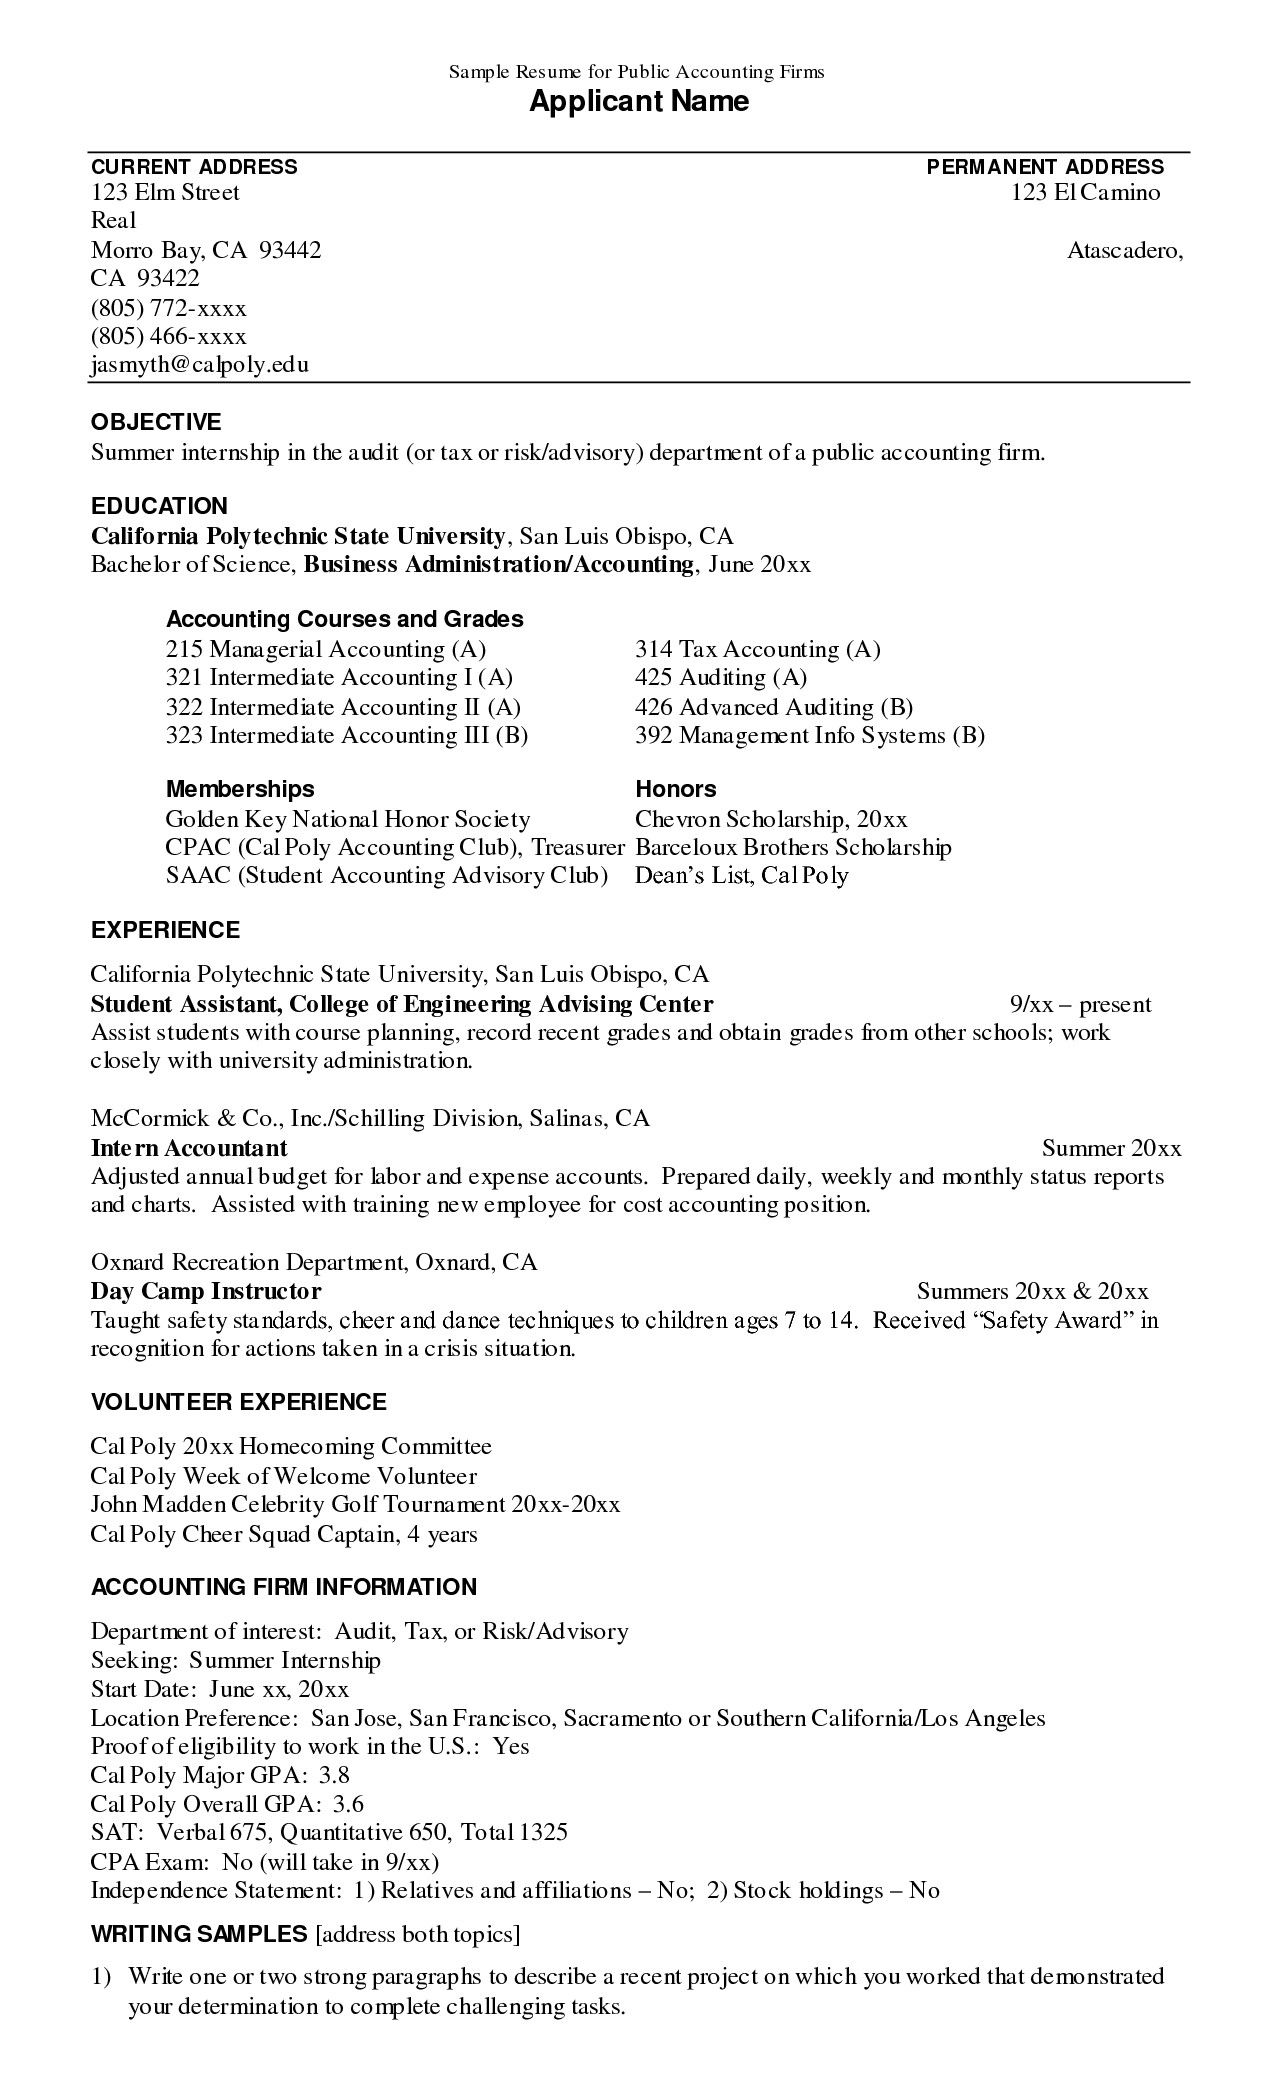 8 Data Scientist Resume Objective Free Templates